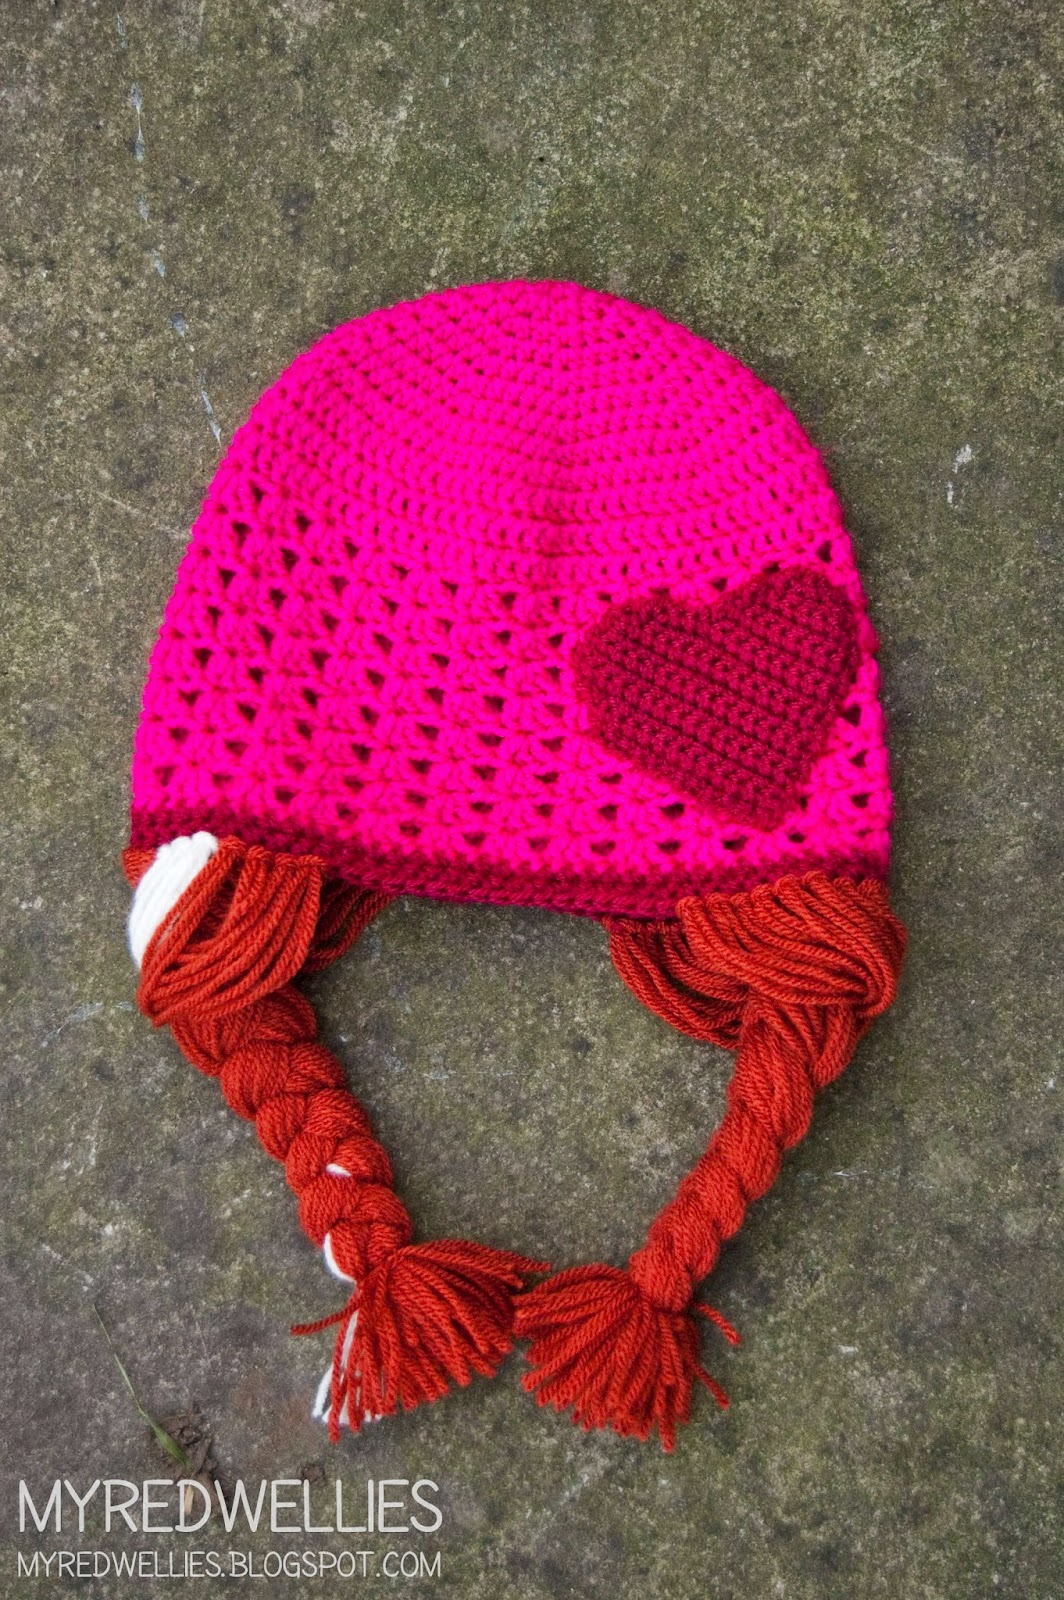 Free Crochet Pattern For Anna Hat : My Red Wellies: Anna & Elsa crochet hats - A free Crochet ...